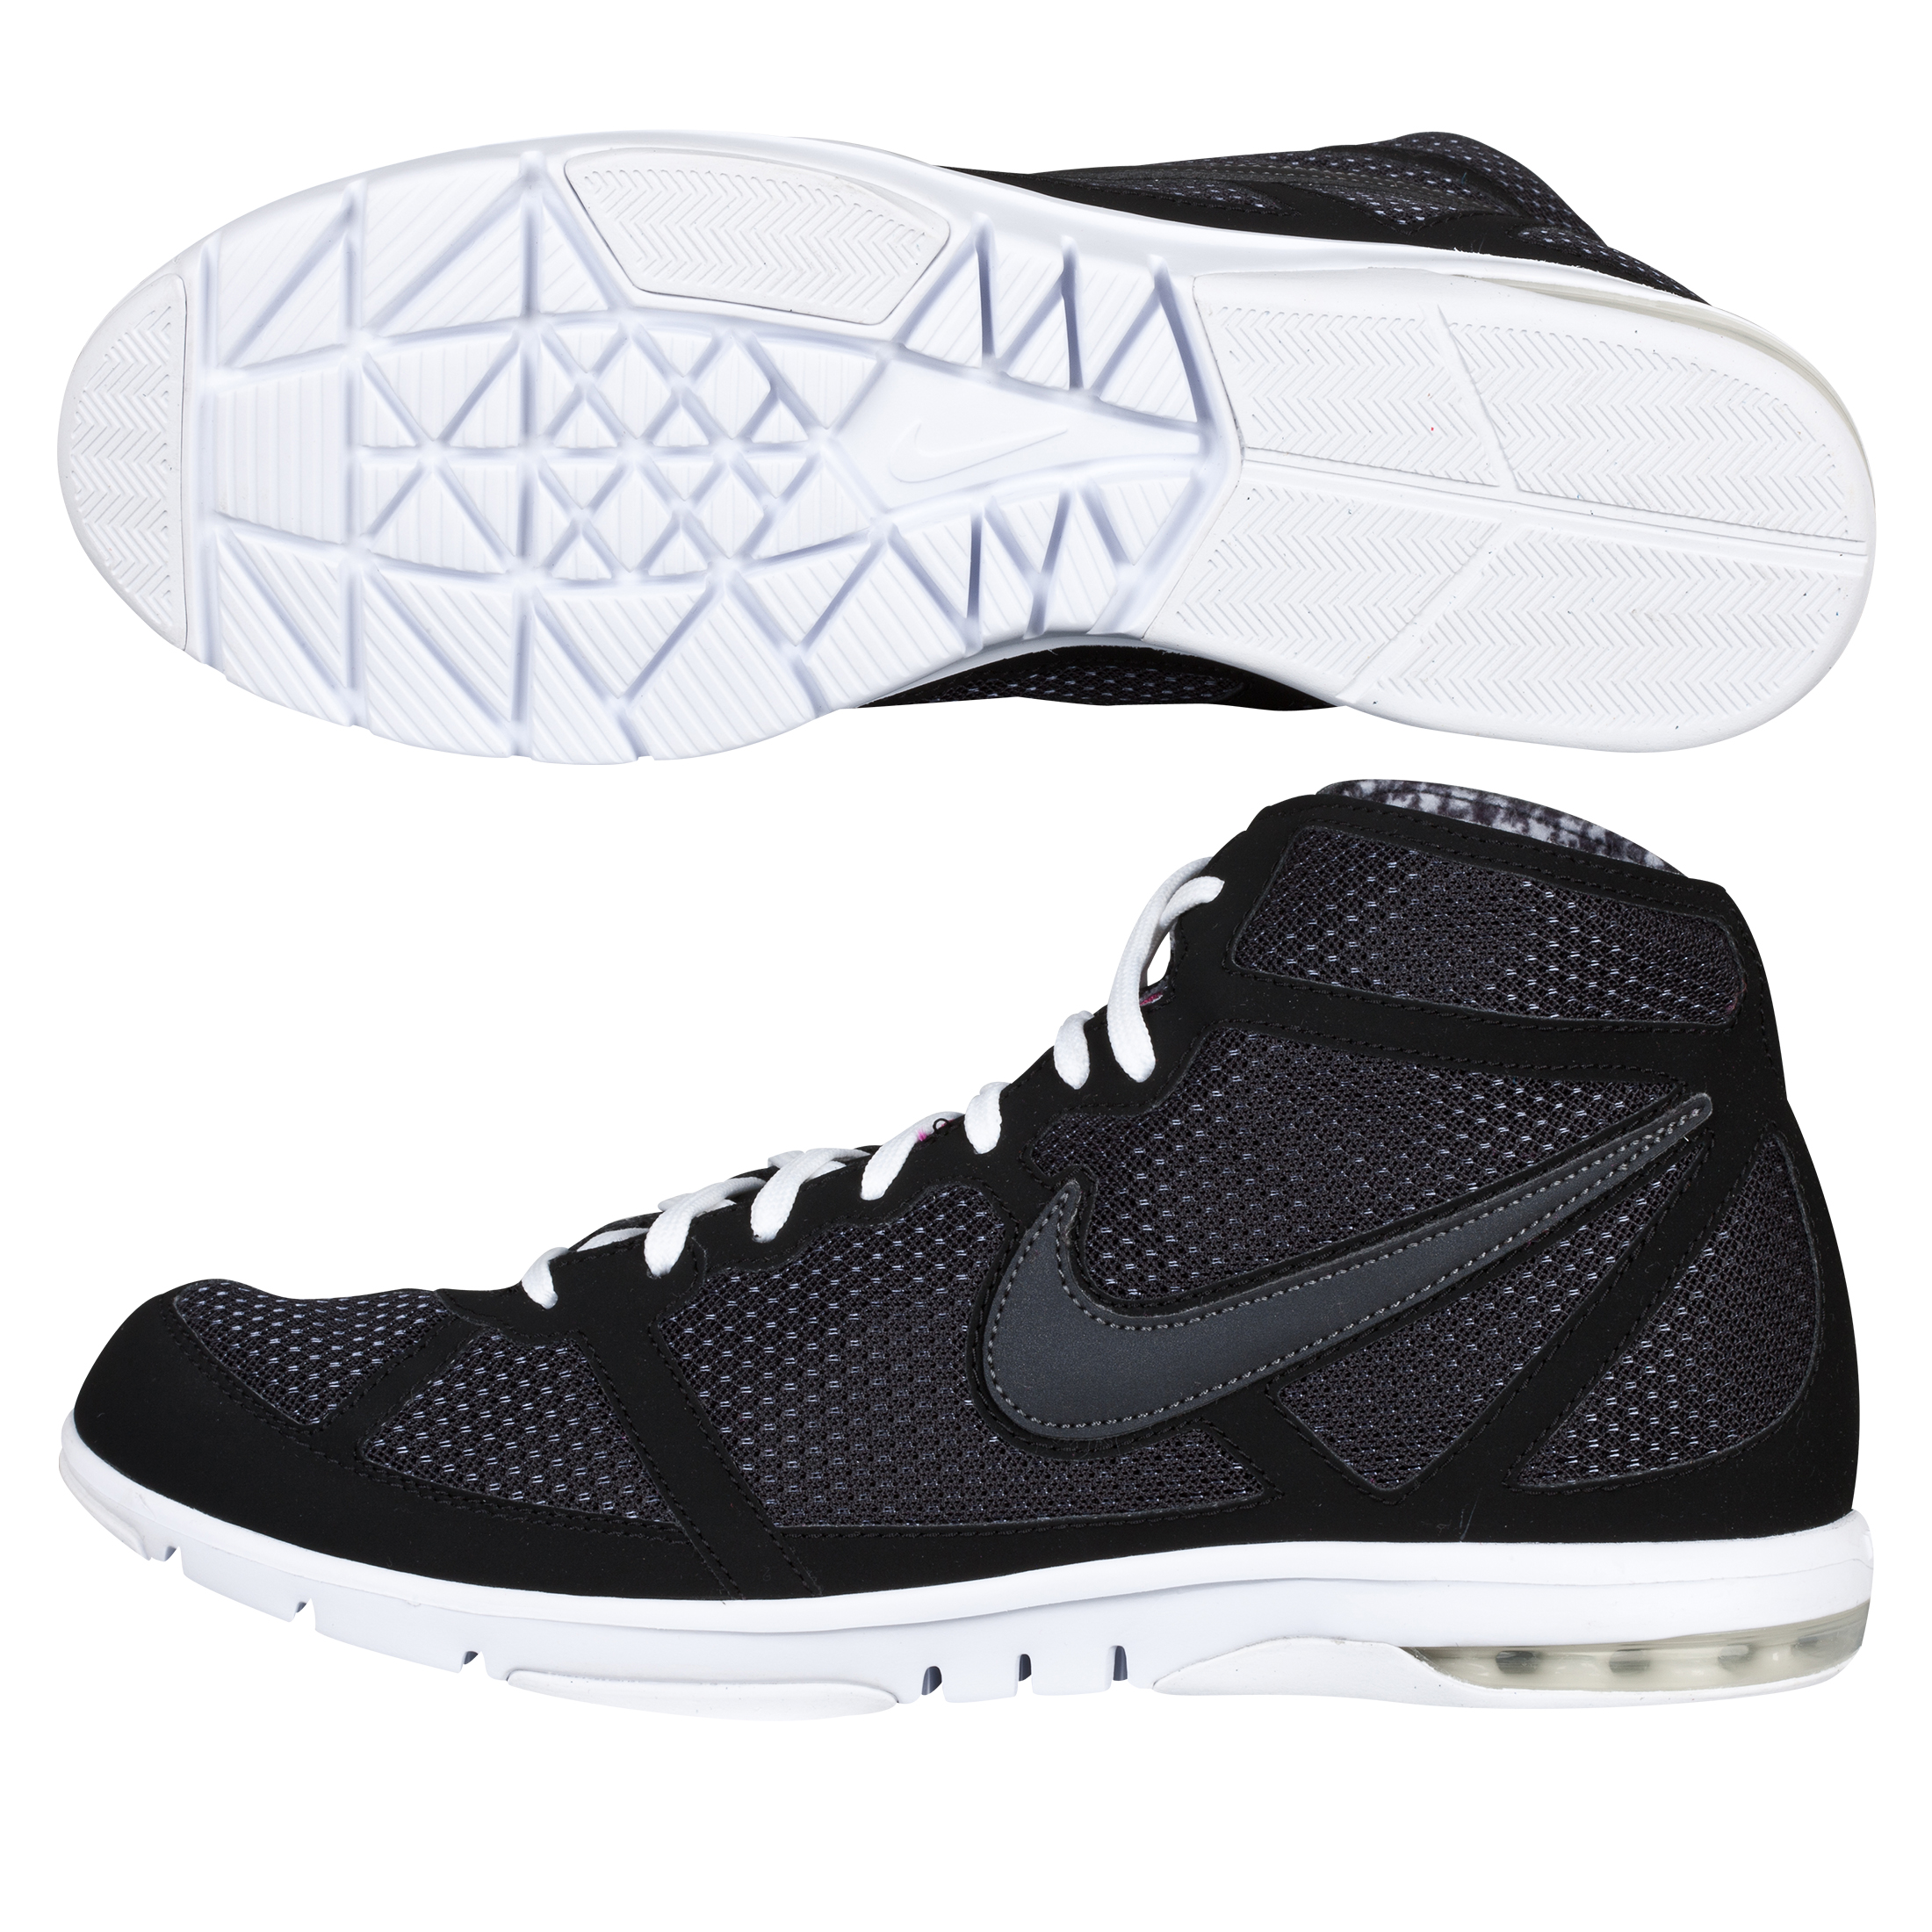 Nike Womens Air Max Mid Trainer - Black/Dark Grey - Womens